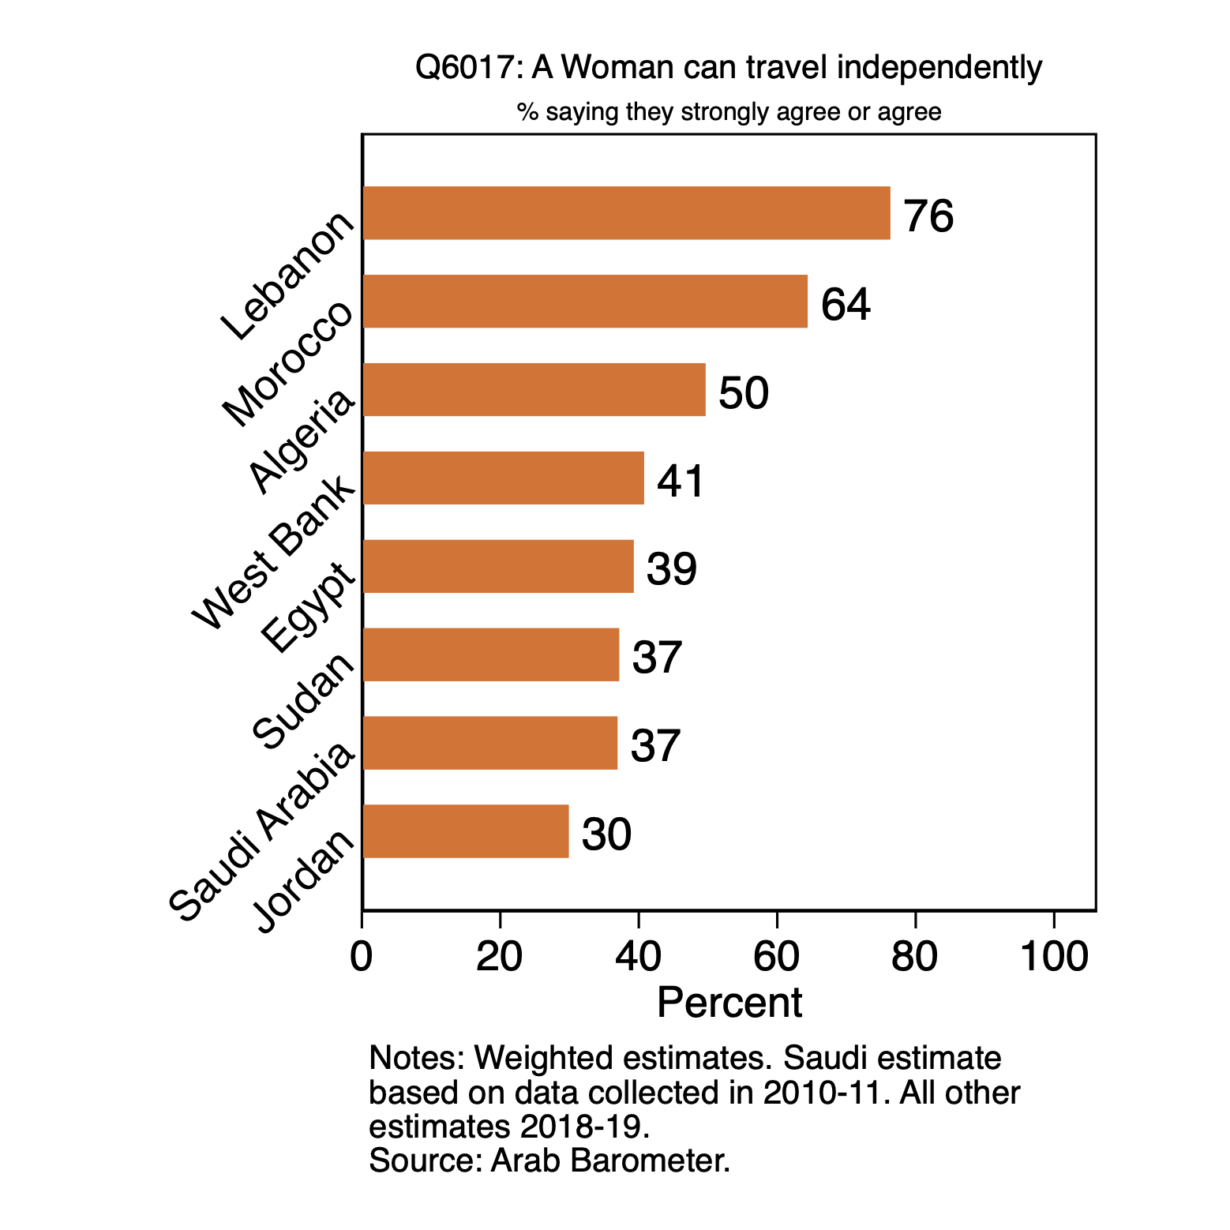 Women's Rights: Are women allowed to travel independently?